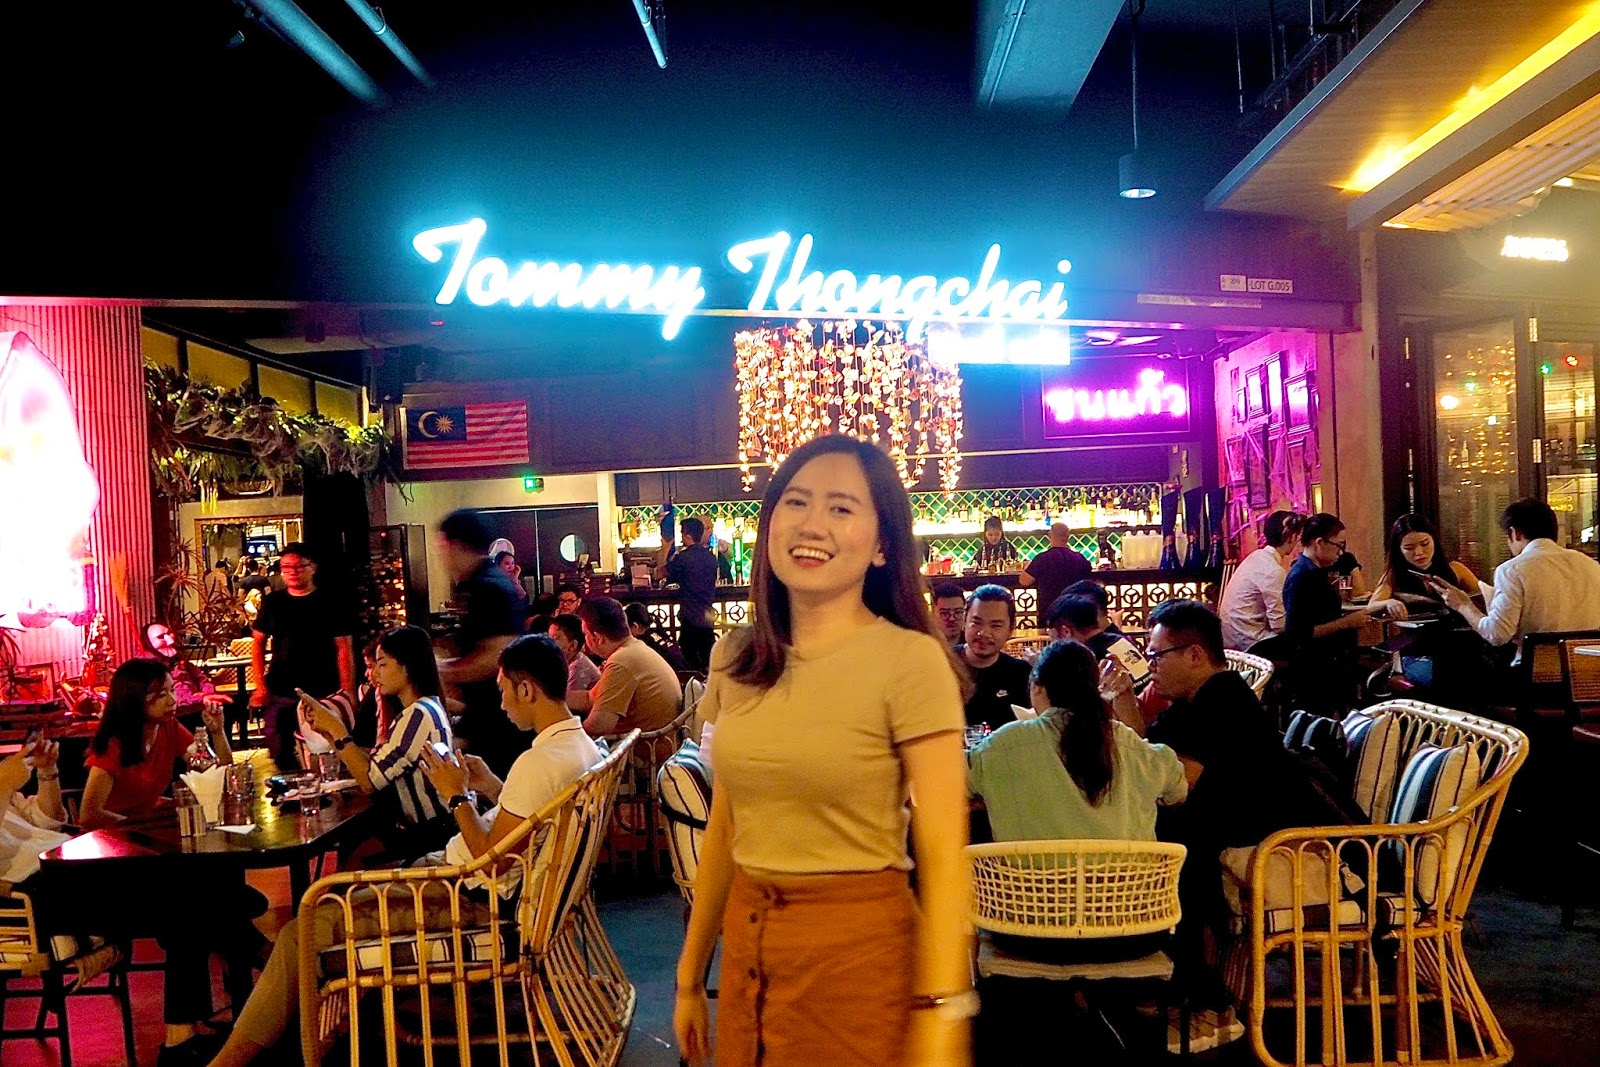 [Food Review] Tommy ThongChai Thai Fusion Restaurant & Bar @ The Square, Jaya One